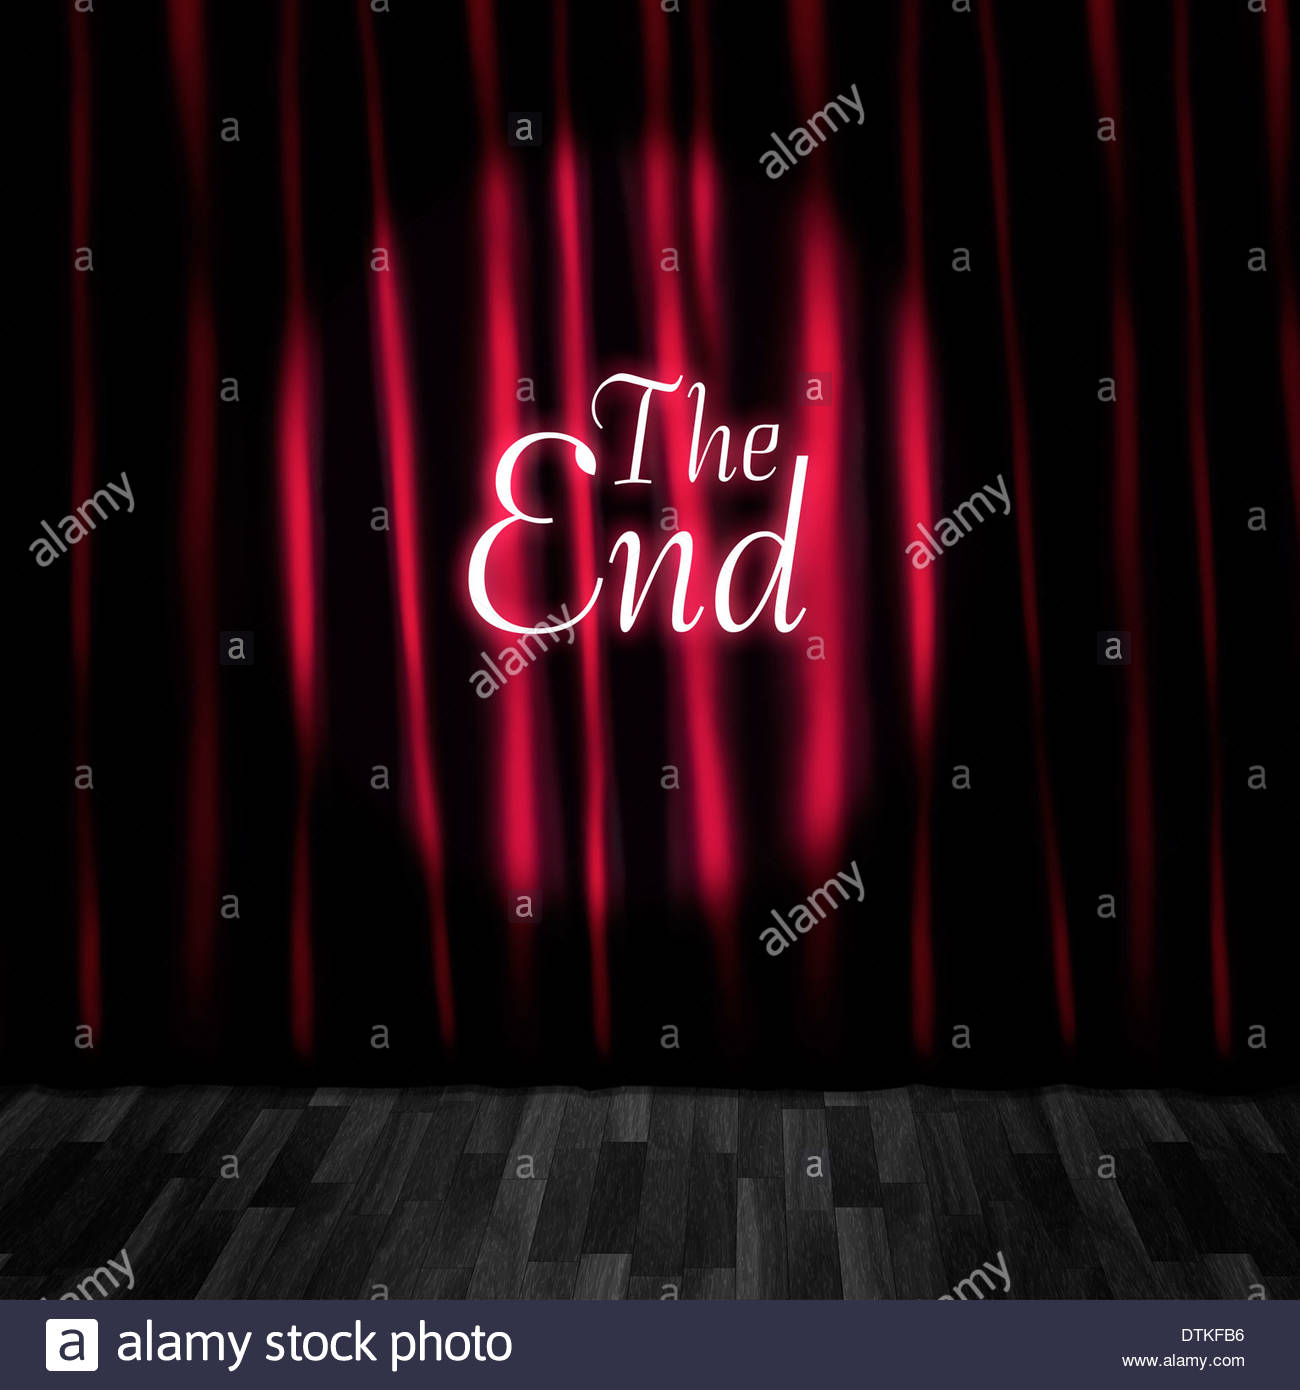 theatre curtain close or stage curtain call in a depiction